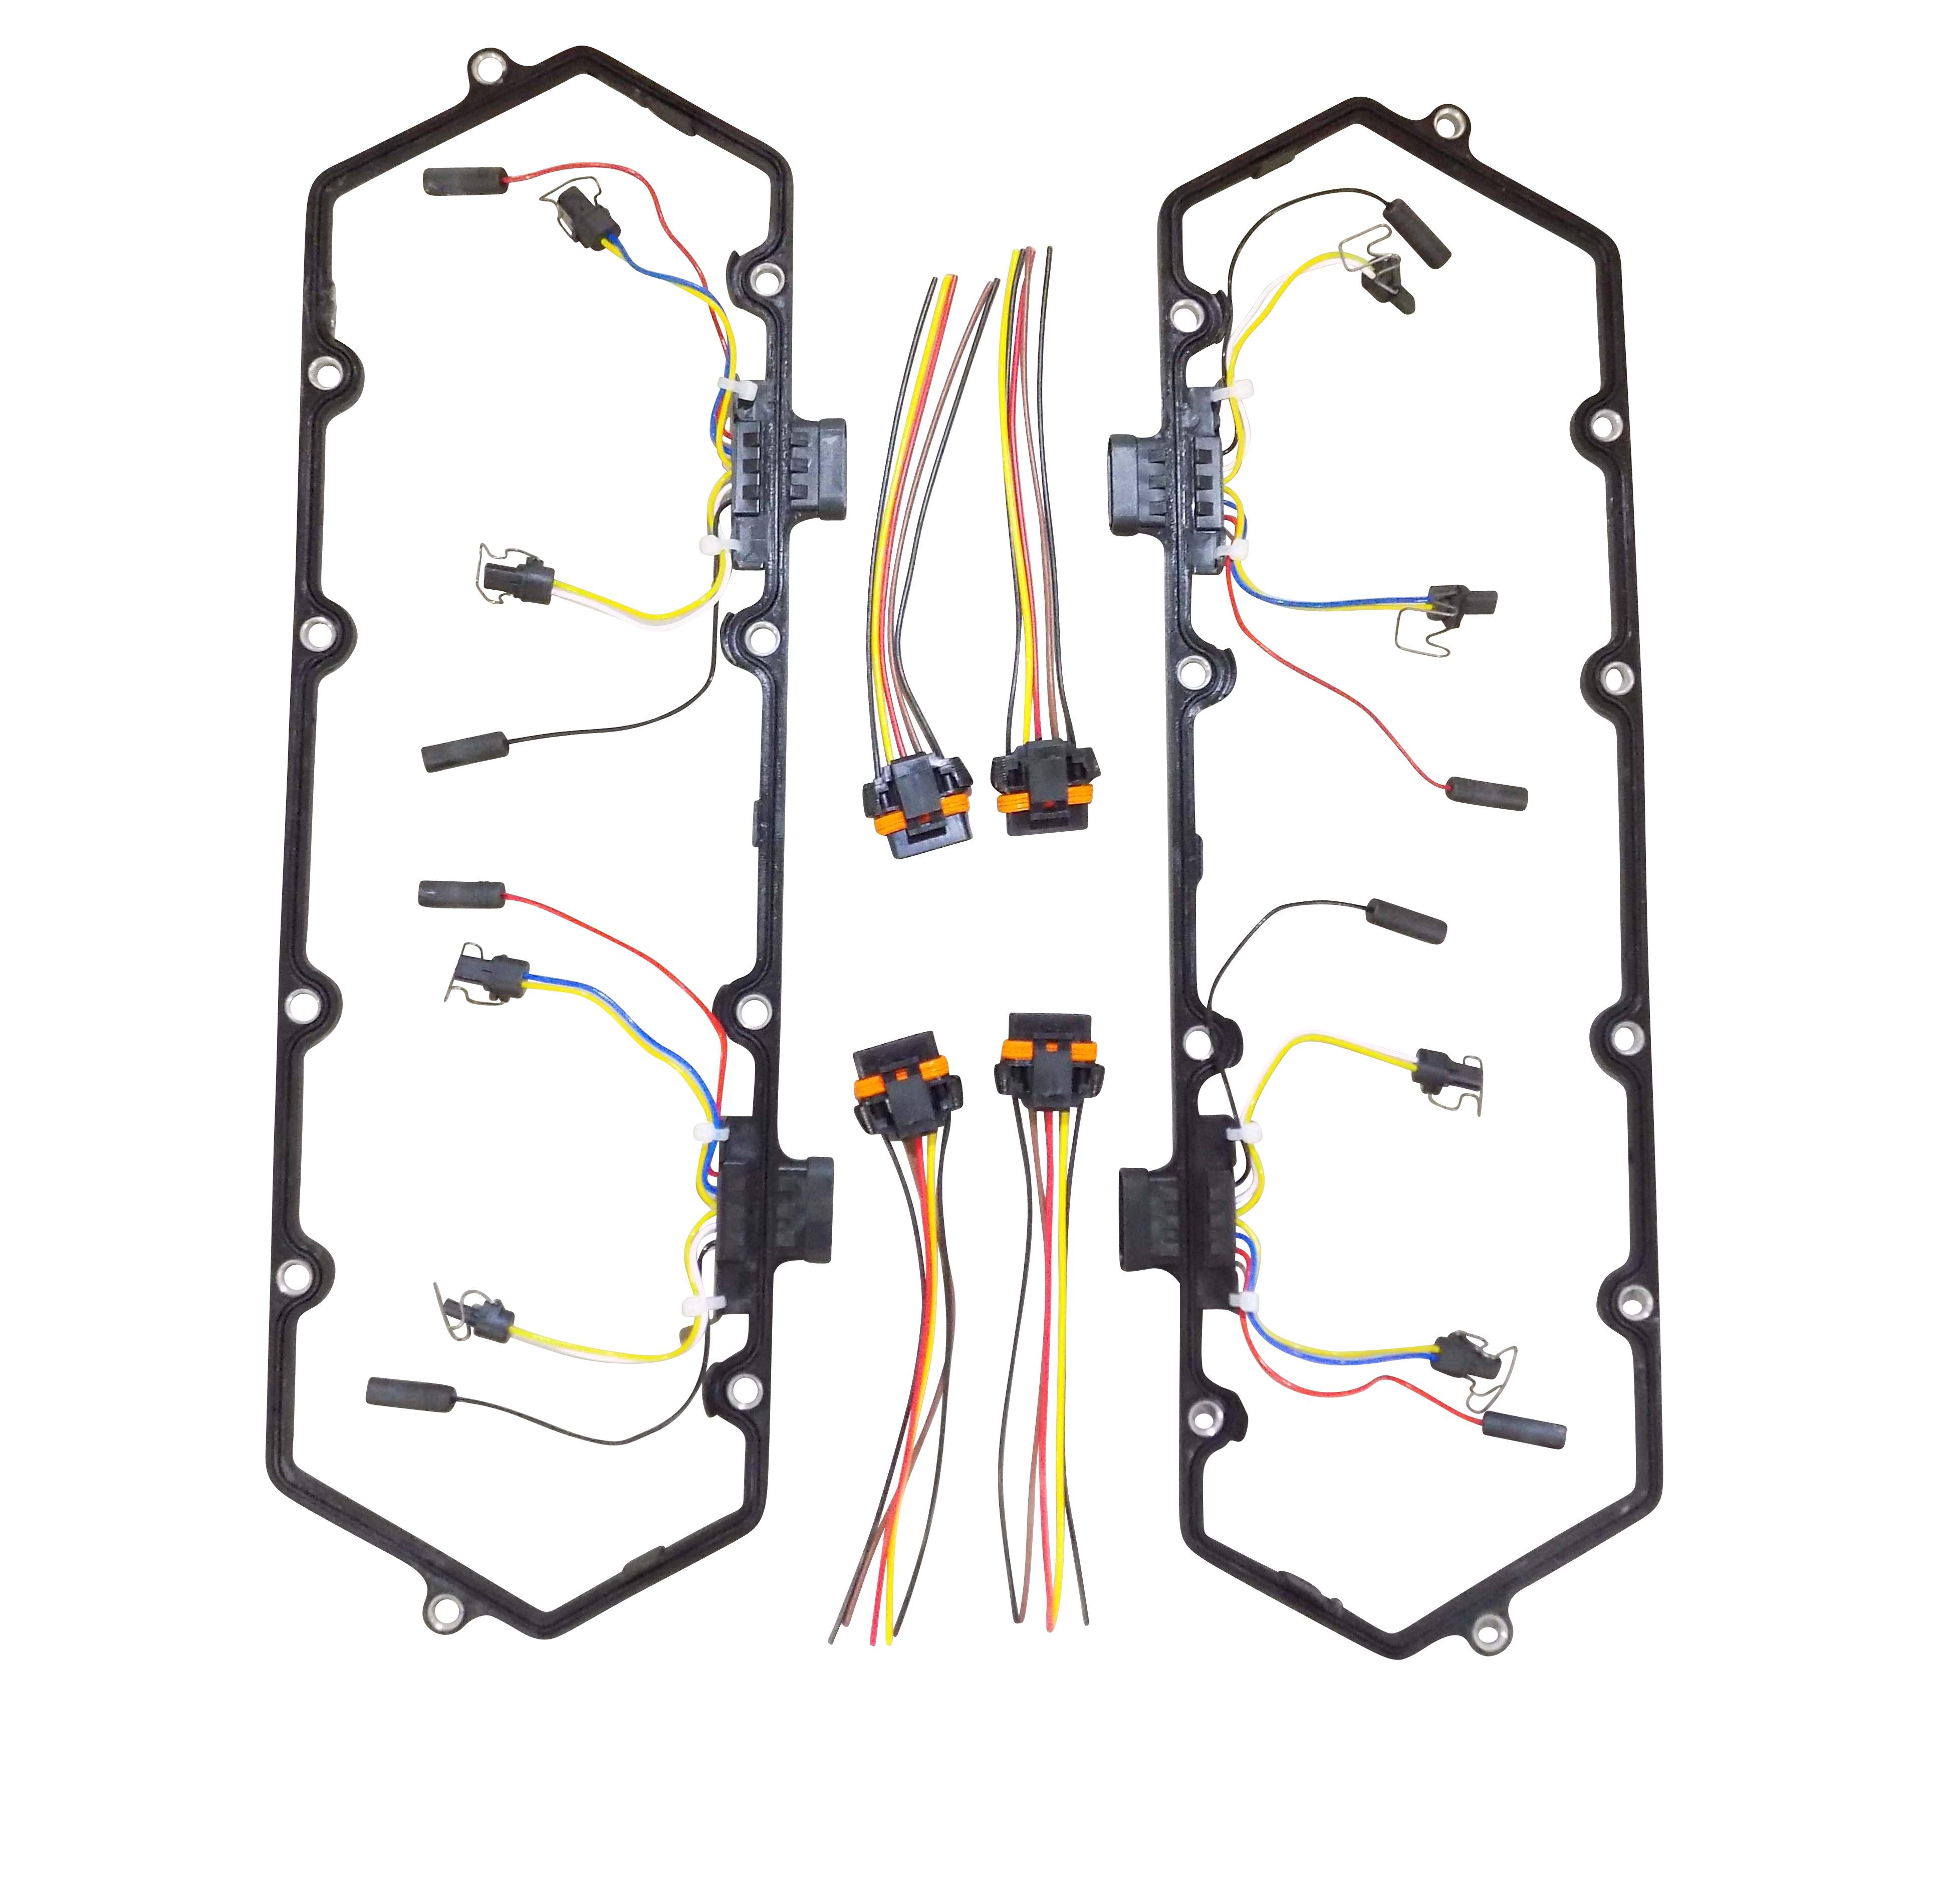 Valve Cover Gasket Set & Wiring Pigtail Harnesses w/ Connectors for 7.3l  1994-1997 Ford Powerstroke | Ford Powerstroke – KB Diesel Performance LLC | 97 Powerstroke Valve Cover Wiring And Harness |  | K.B. Diesel Performance